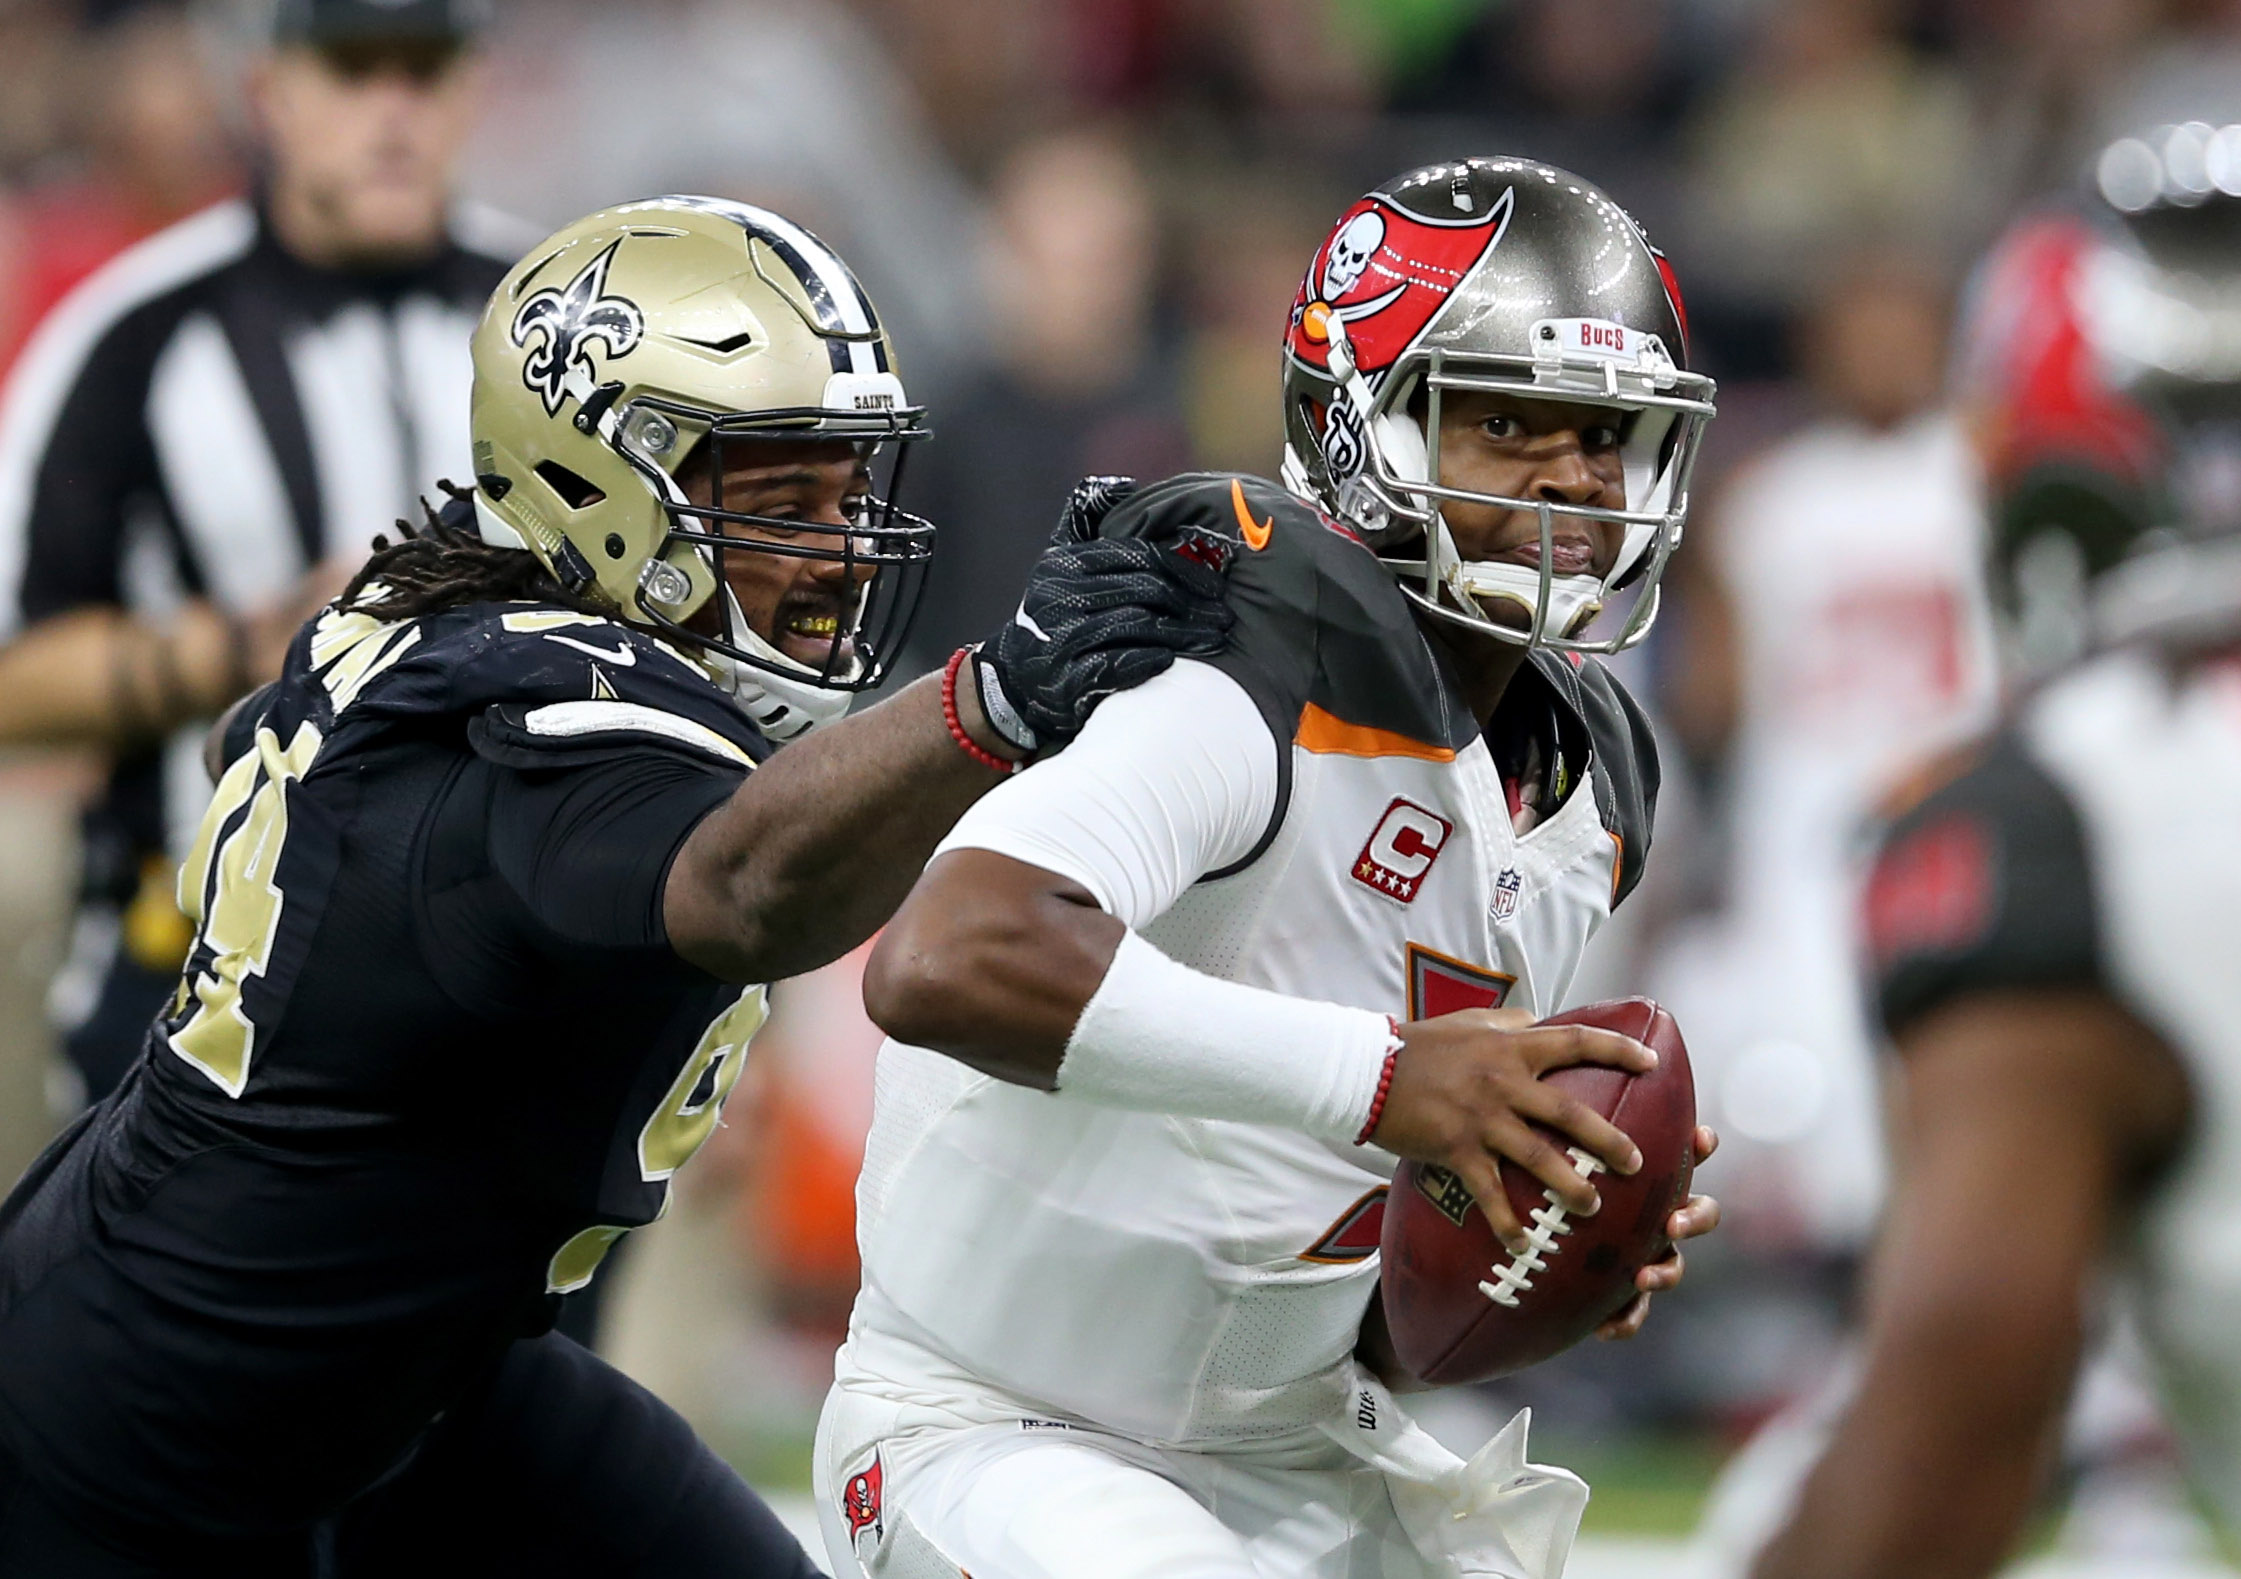 Cameron Jordan snubbed by NFL Network